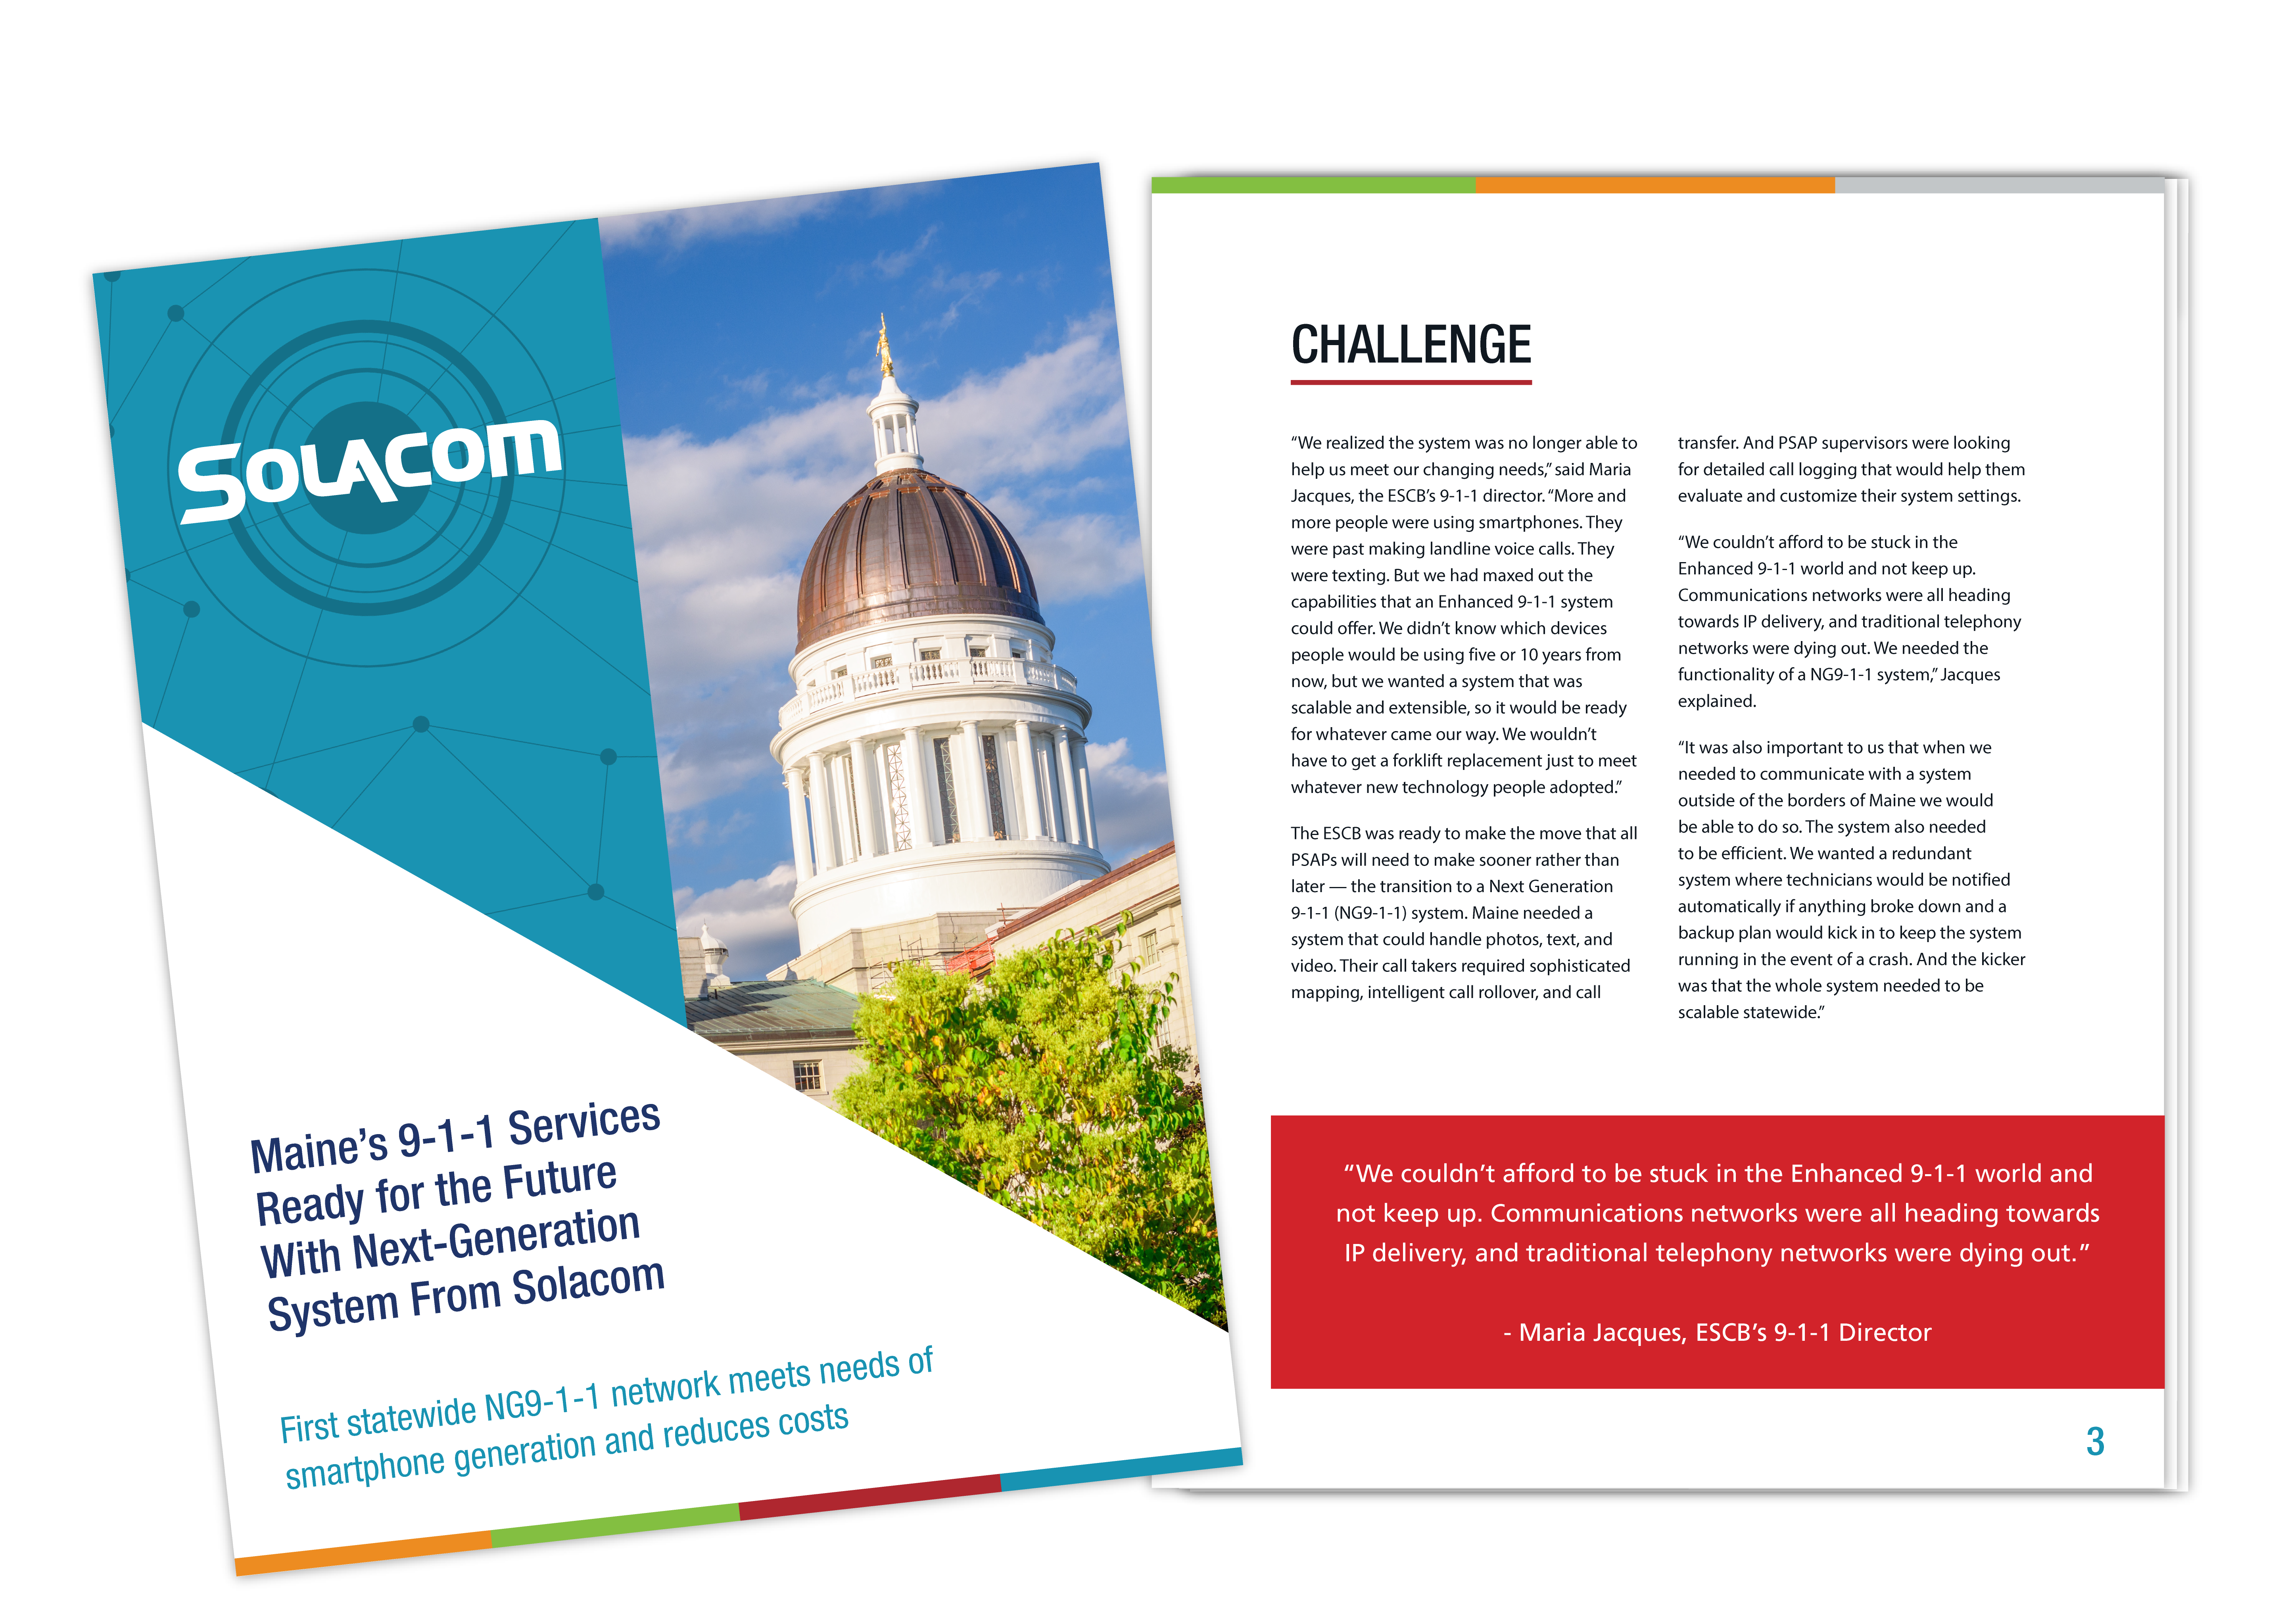 Maine Implements the First Statewide NG9-1-1 System With Solacom, a Solacom case study